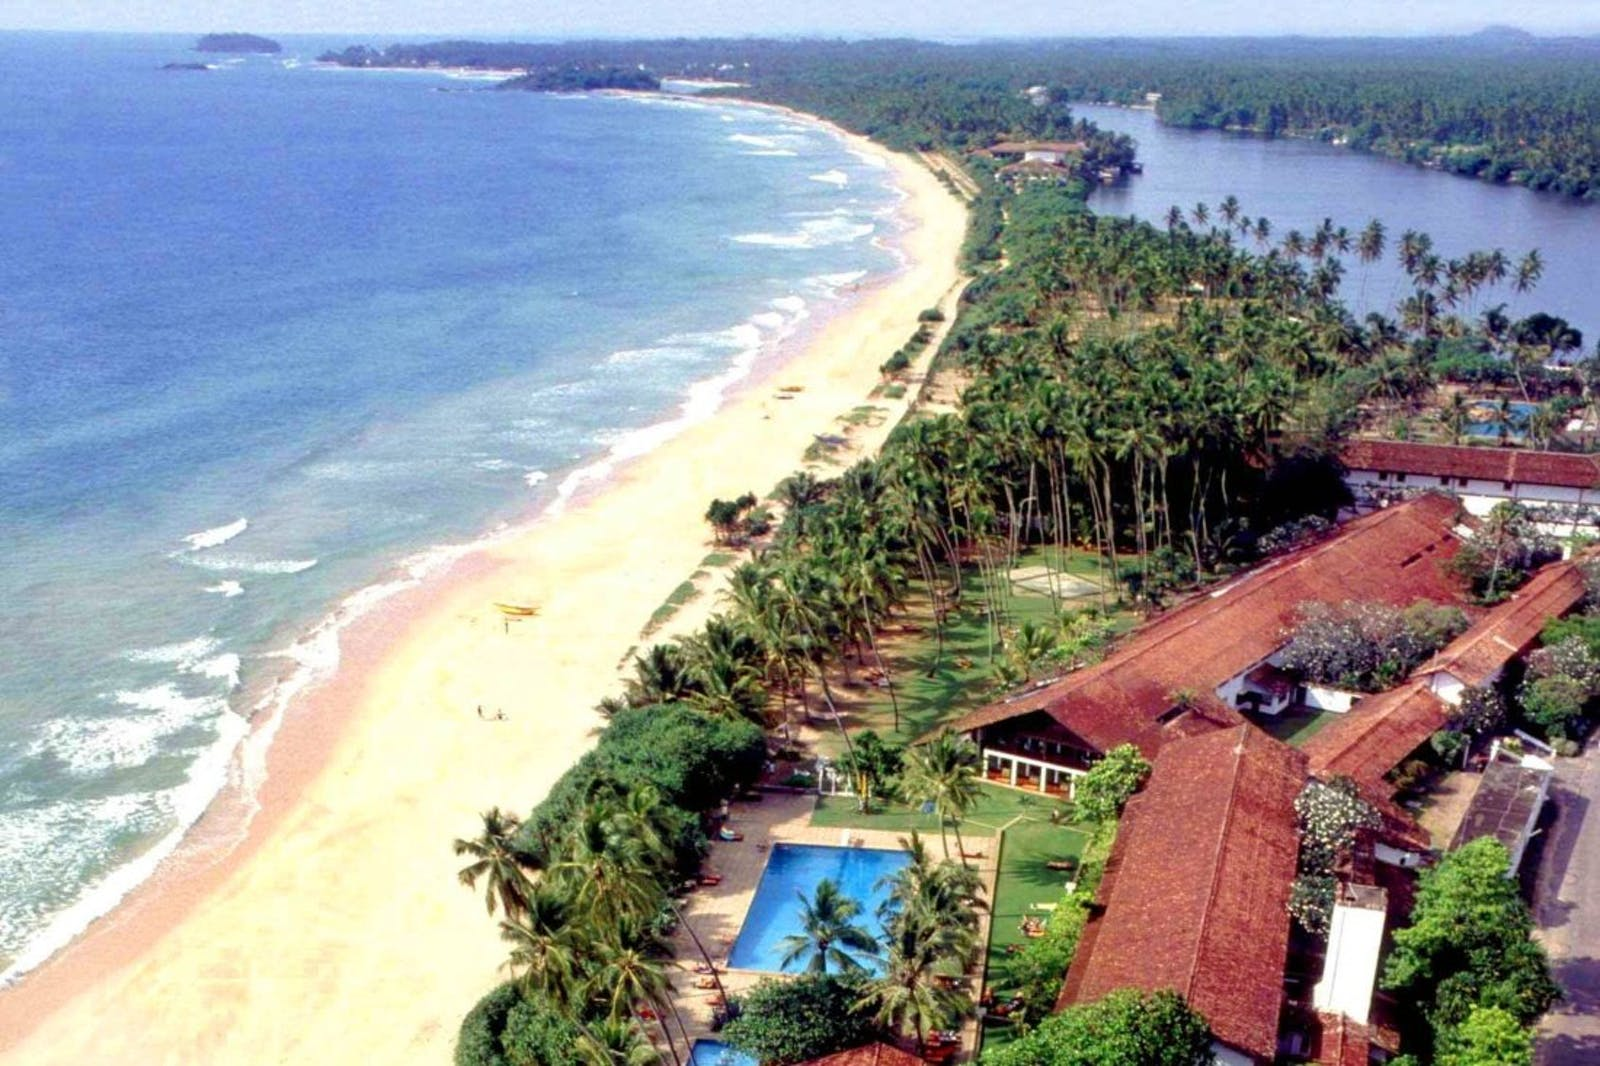 Beach view of Avani Bentota, Sri Lanka